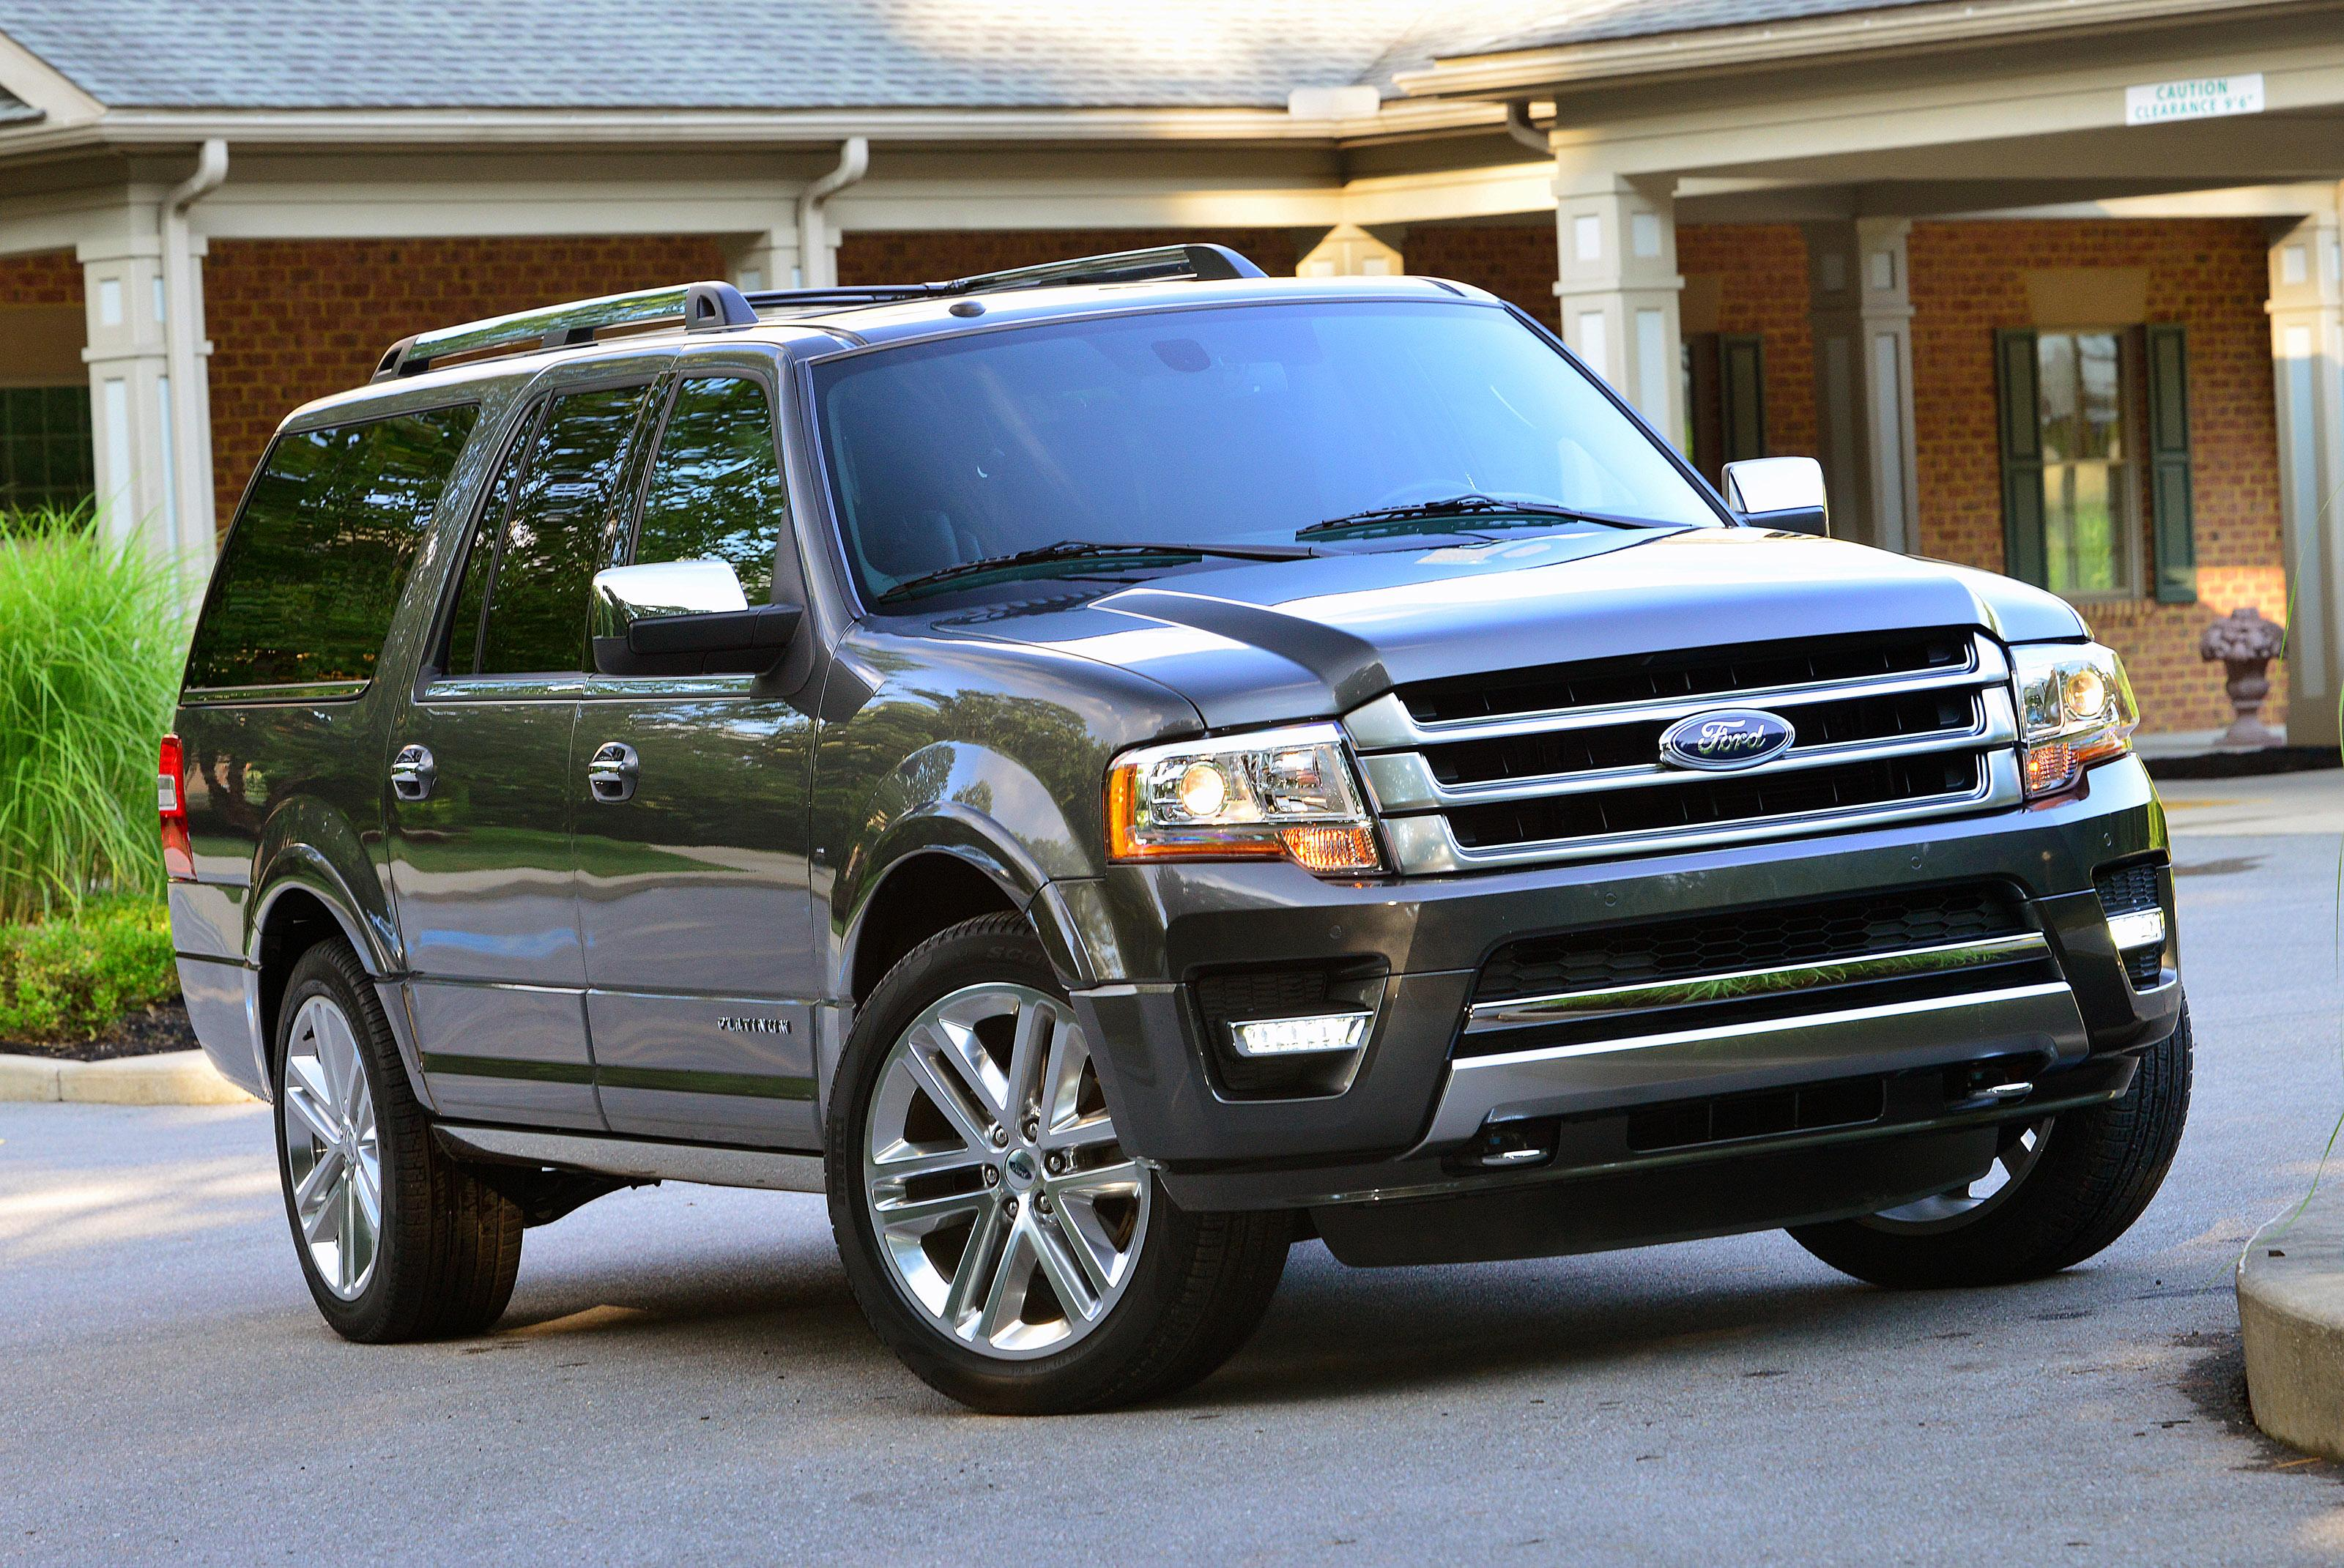 ford 39 embarks 39 on its brand new expedition this month pittsburgh post gazette. Black Bedroom Furniture Sets. Home Design Ideas